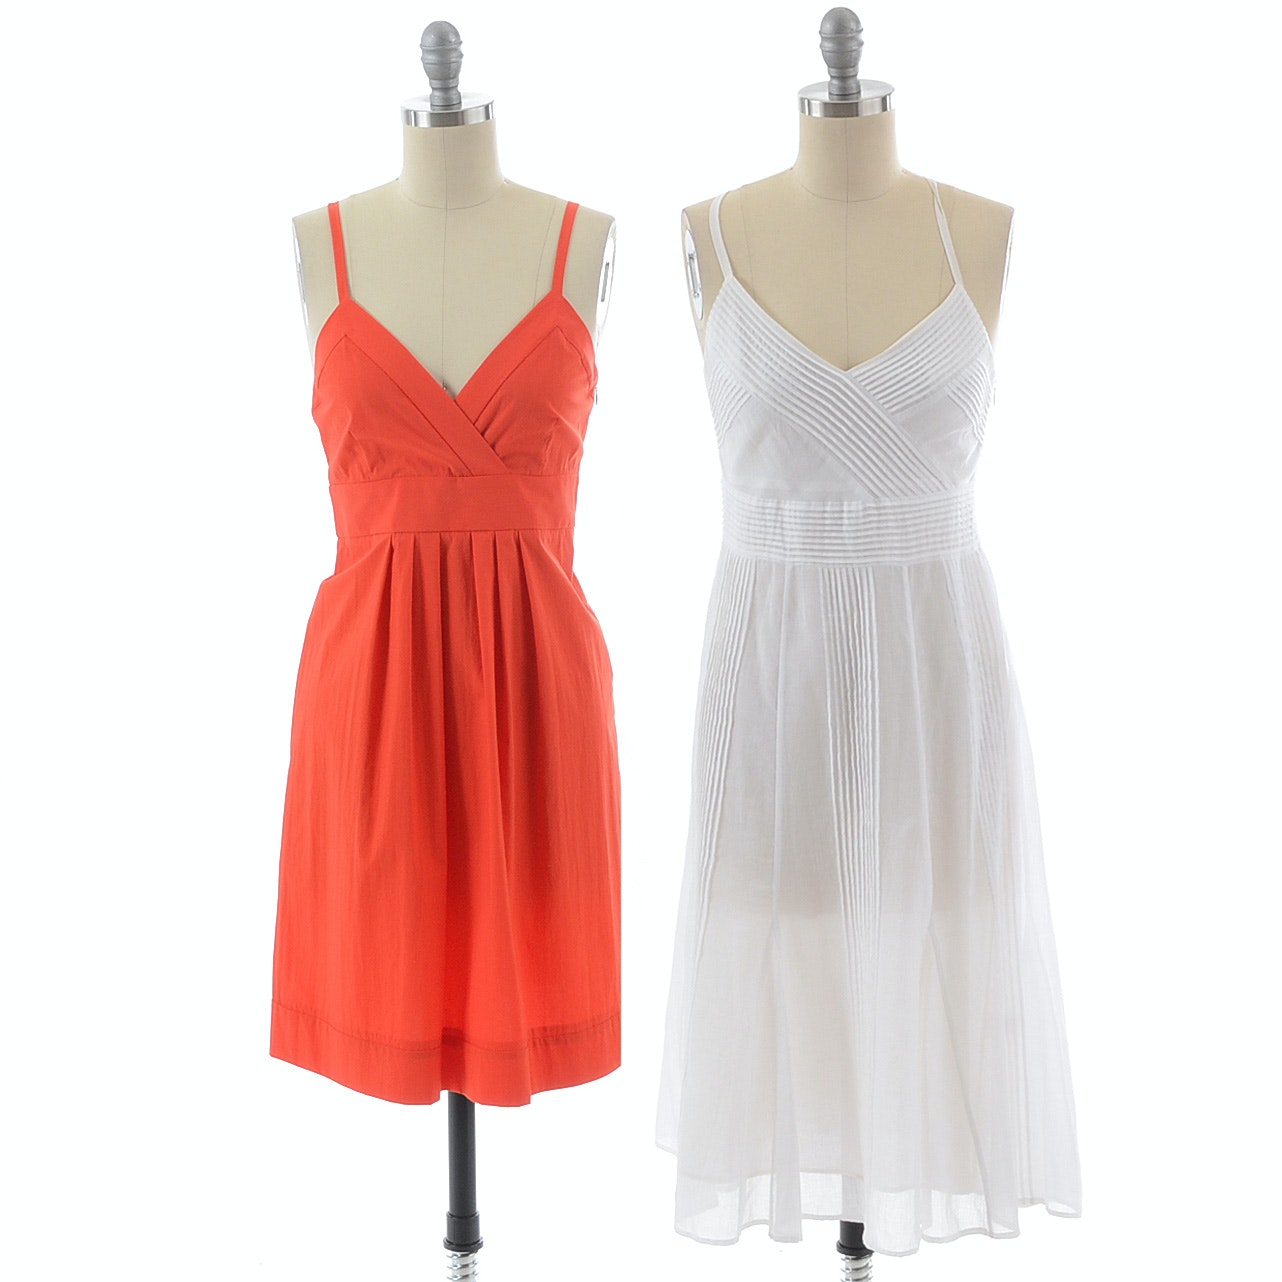 """Two Theory Brand Sleeveless Sun Dresses, Including a Red Orange """"Miga"""" Dress, New With Tag"""